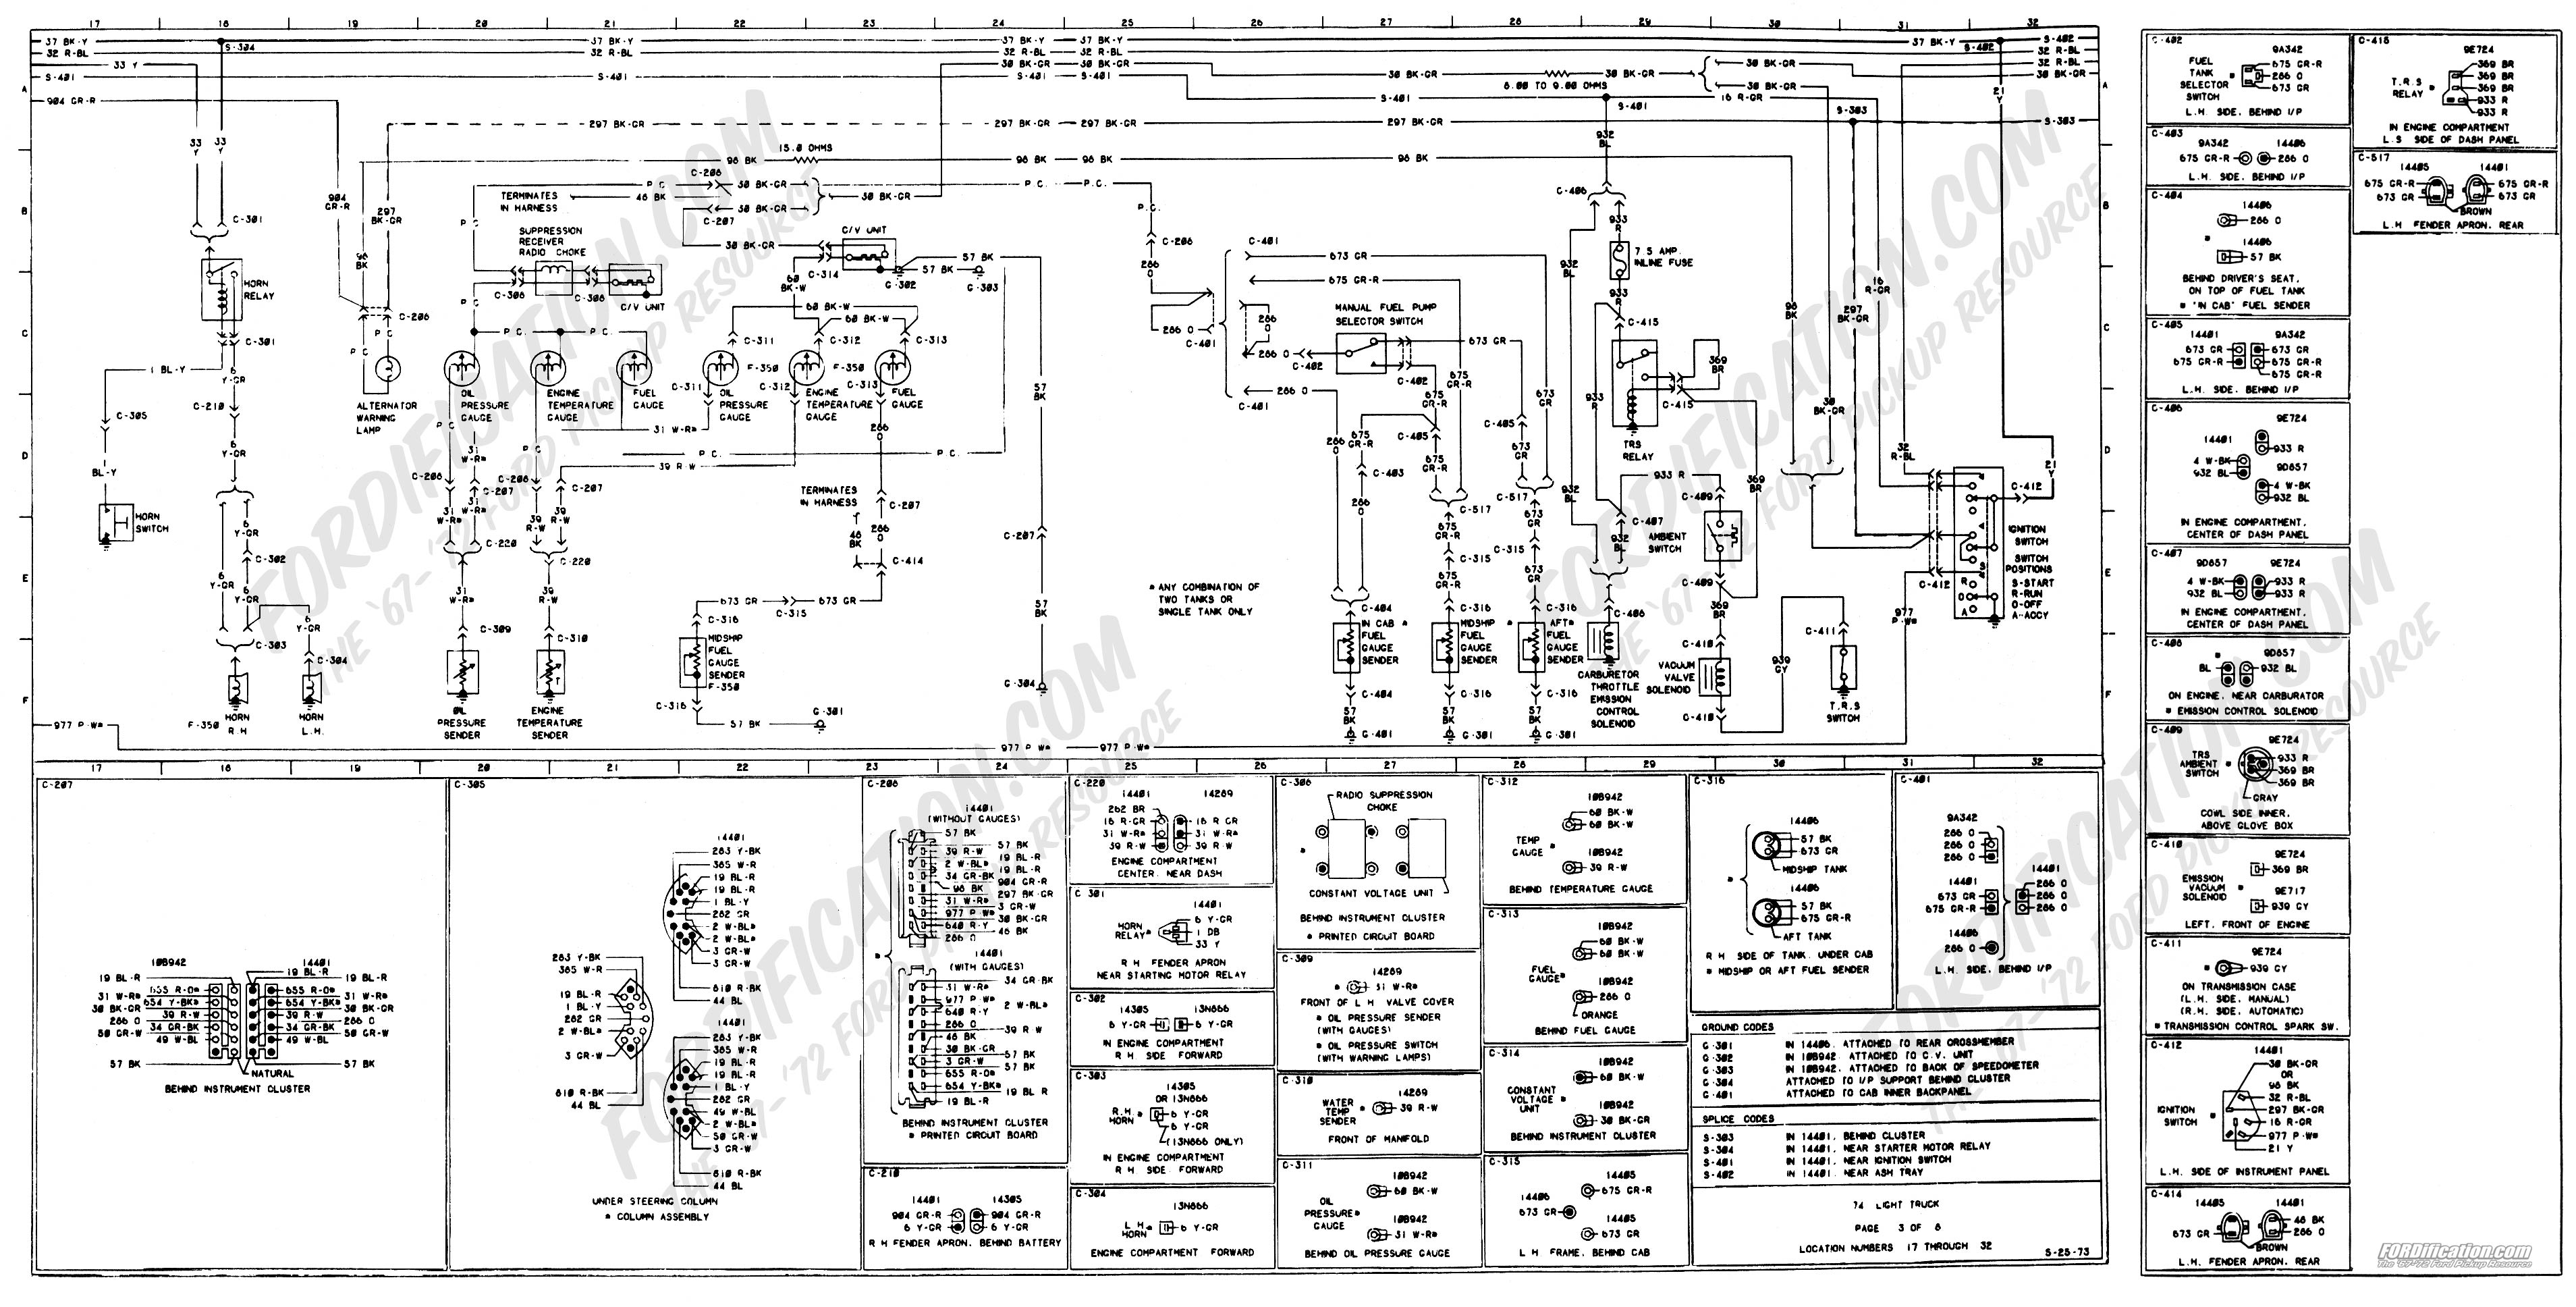 wiring_74master_3of8 1973 1979 ford truck wiring diagrams & schematics fordification net 1979 bronco fuse box diagram at pacquiaovsvargaslive.co